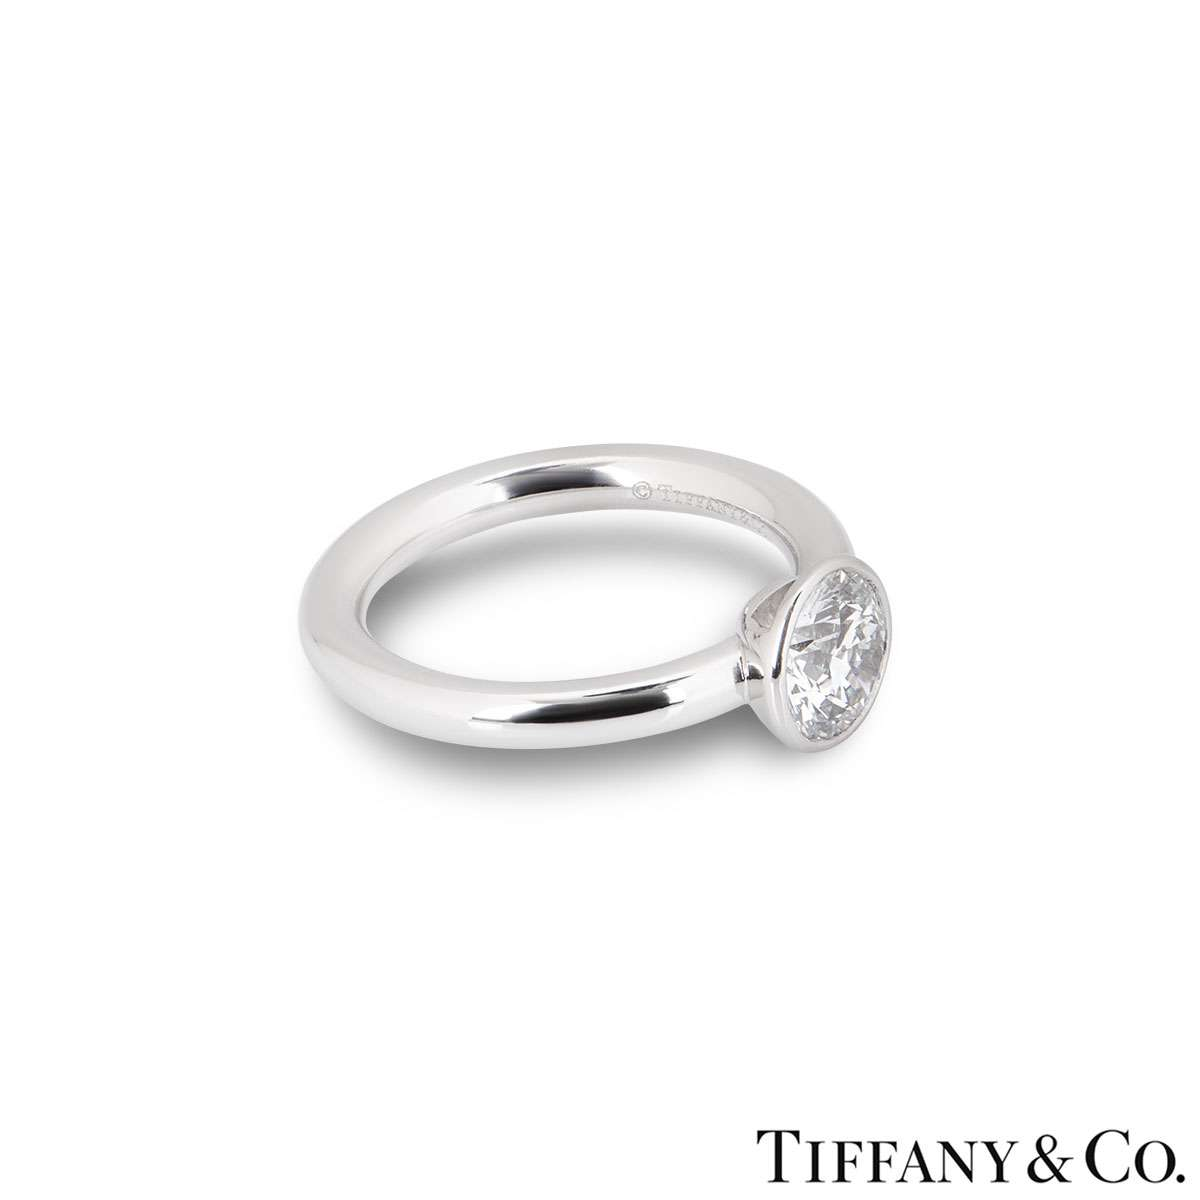 Tiffany & Co. Round Brilliant Cut Diamond Ring 1.05ct F/VVS2